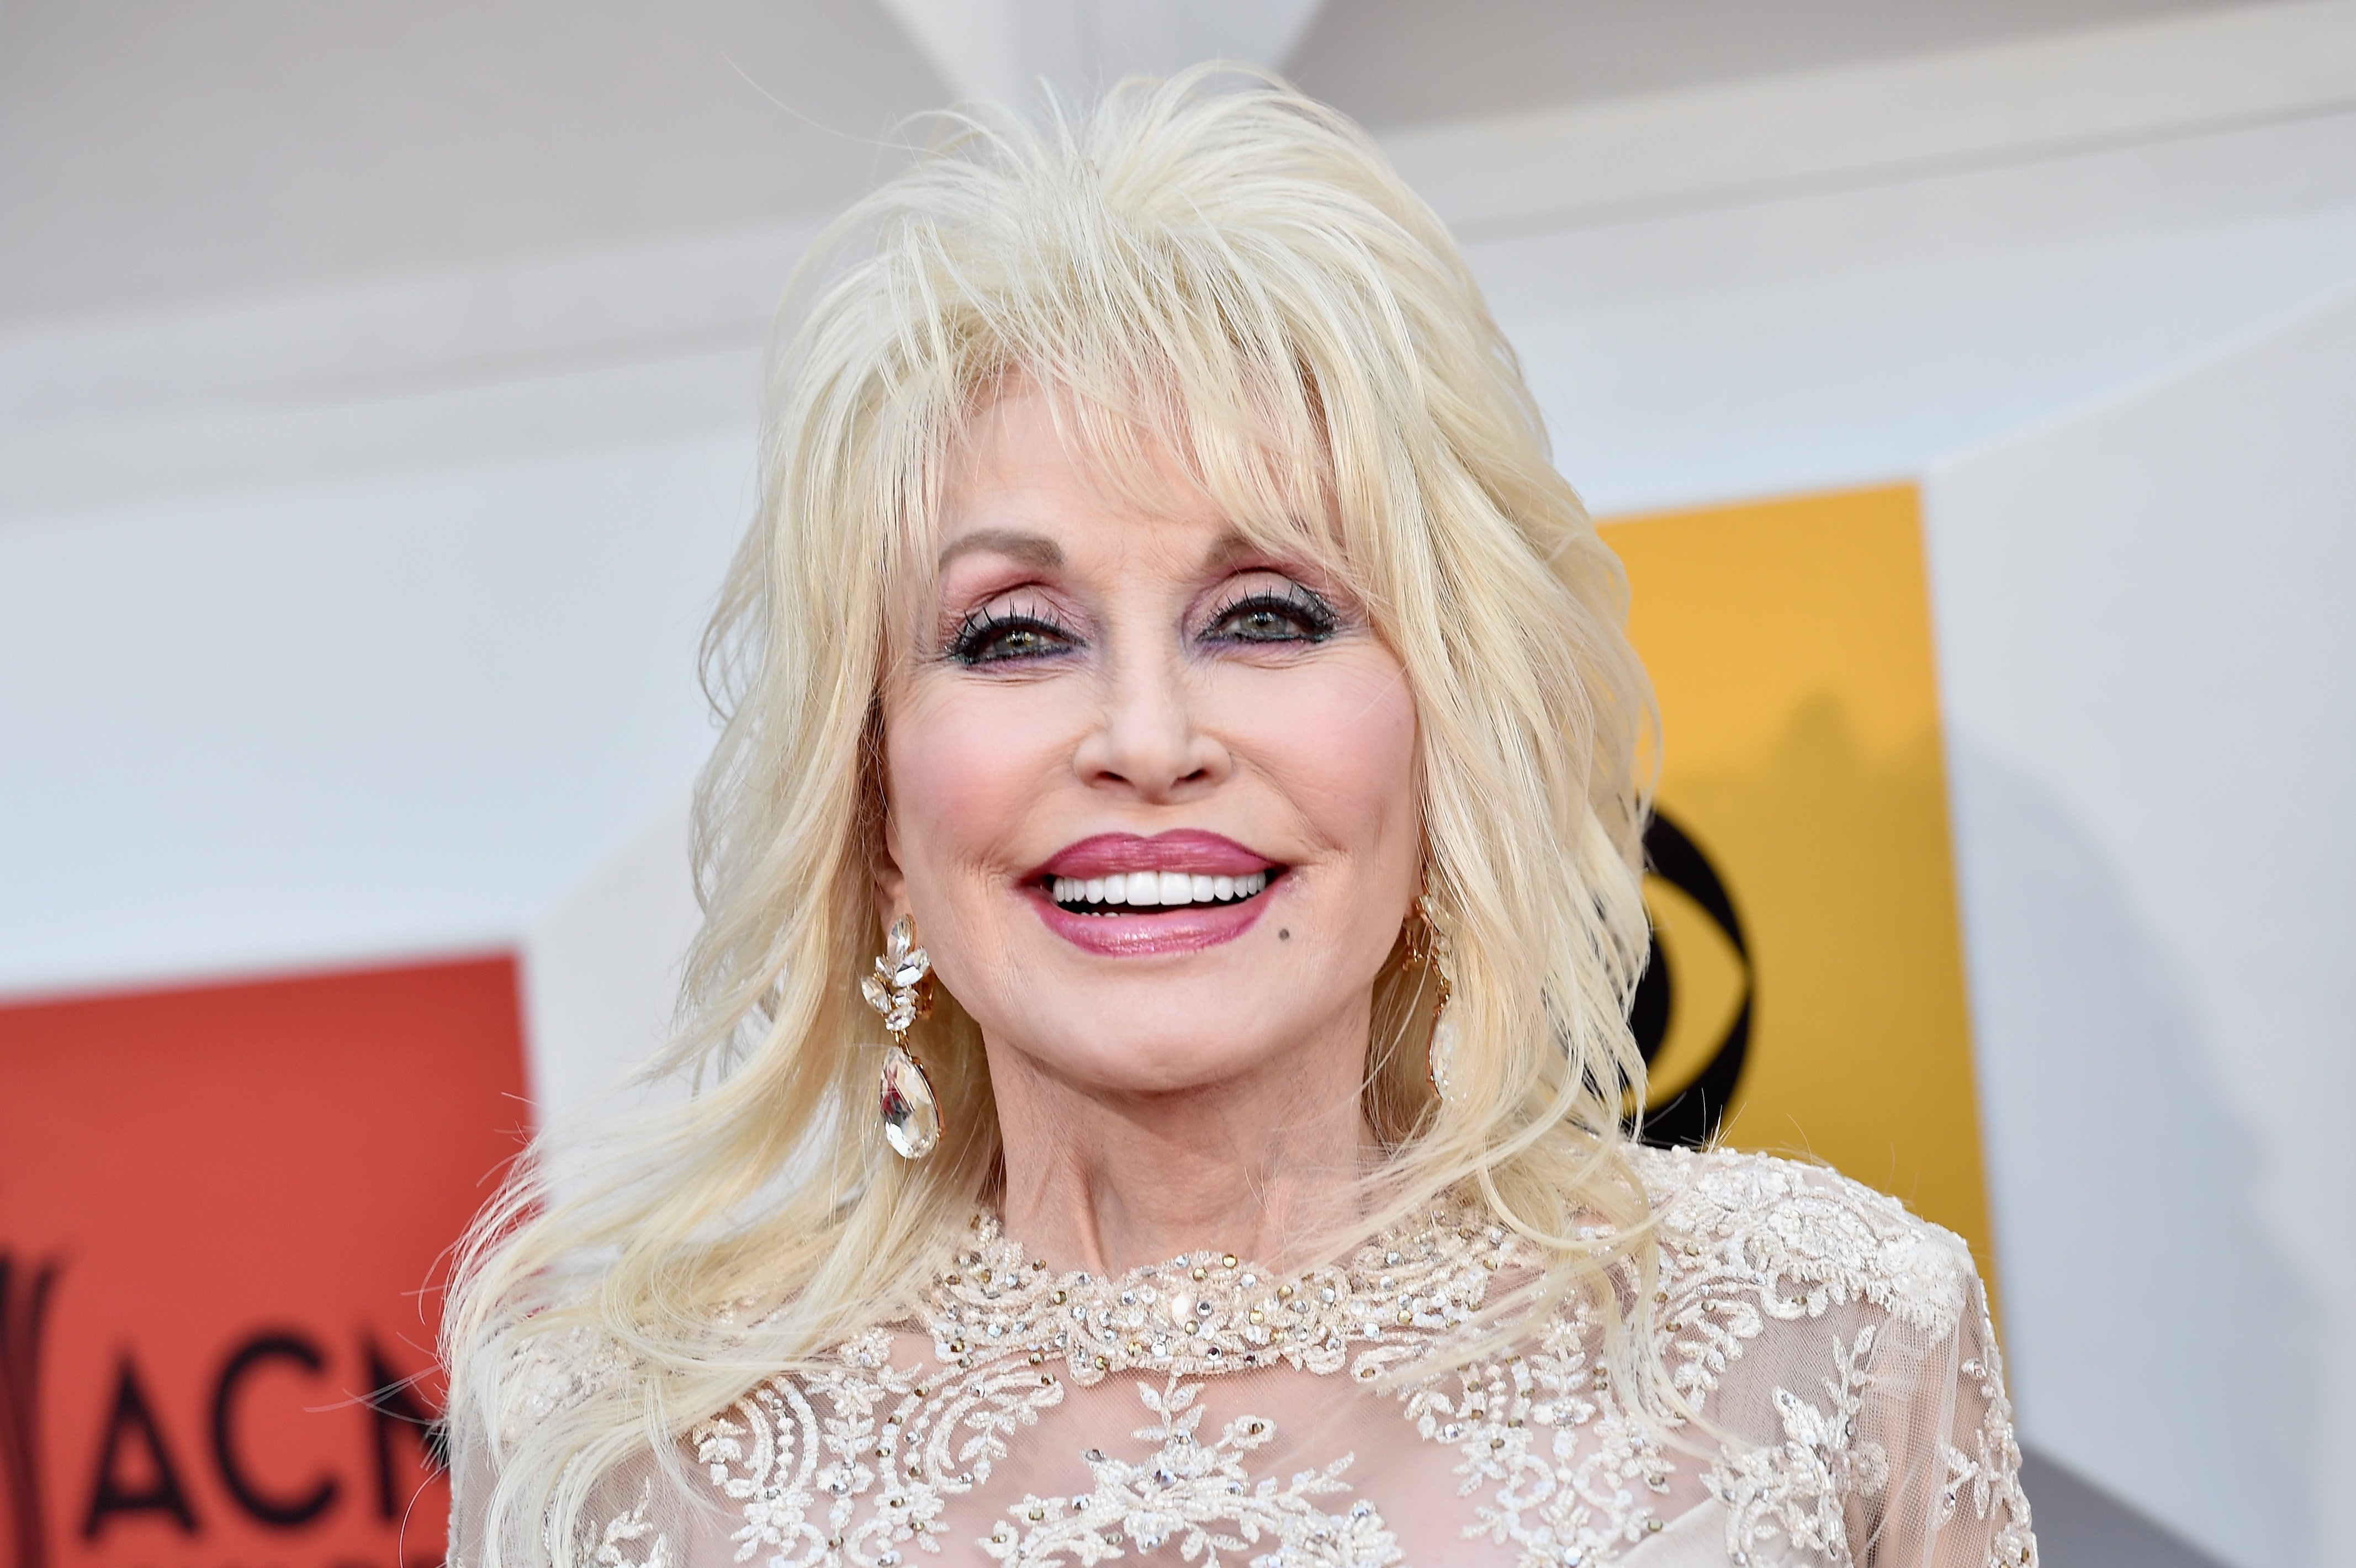 Dolly Parton at the 51st Academy of Country Music Awards at MGM Grand Garden Arena on April 3, 2016 in Las Vegas, Nevada | Photo: Getty Images